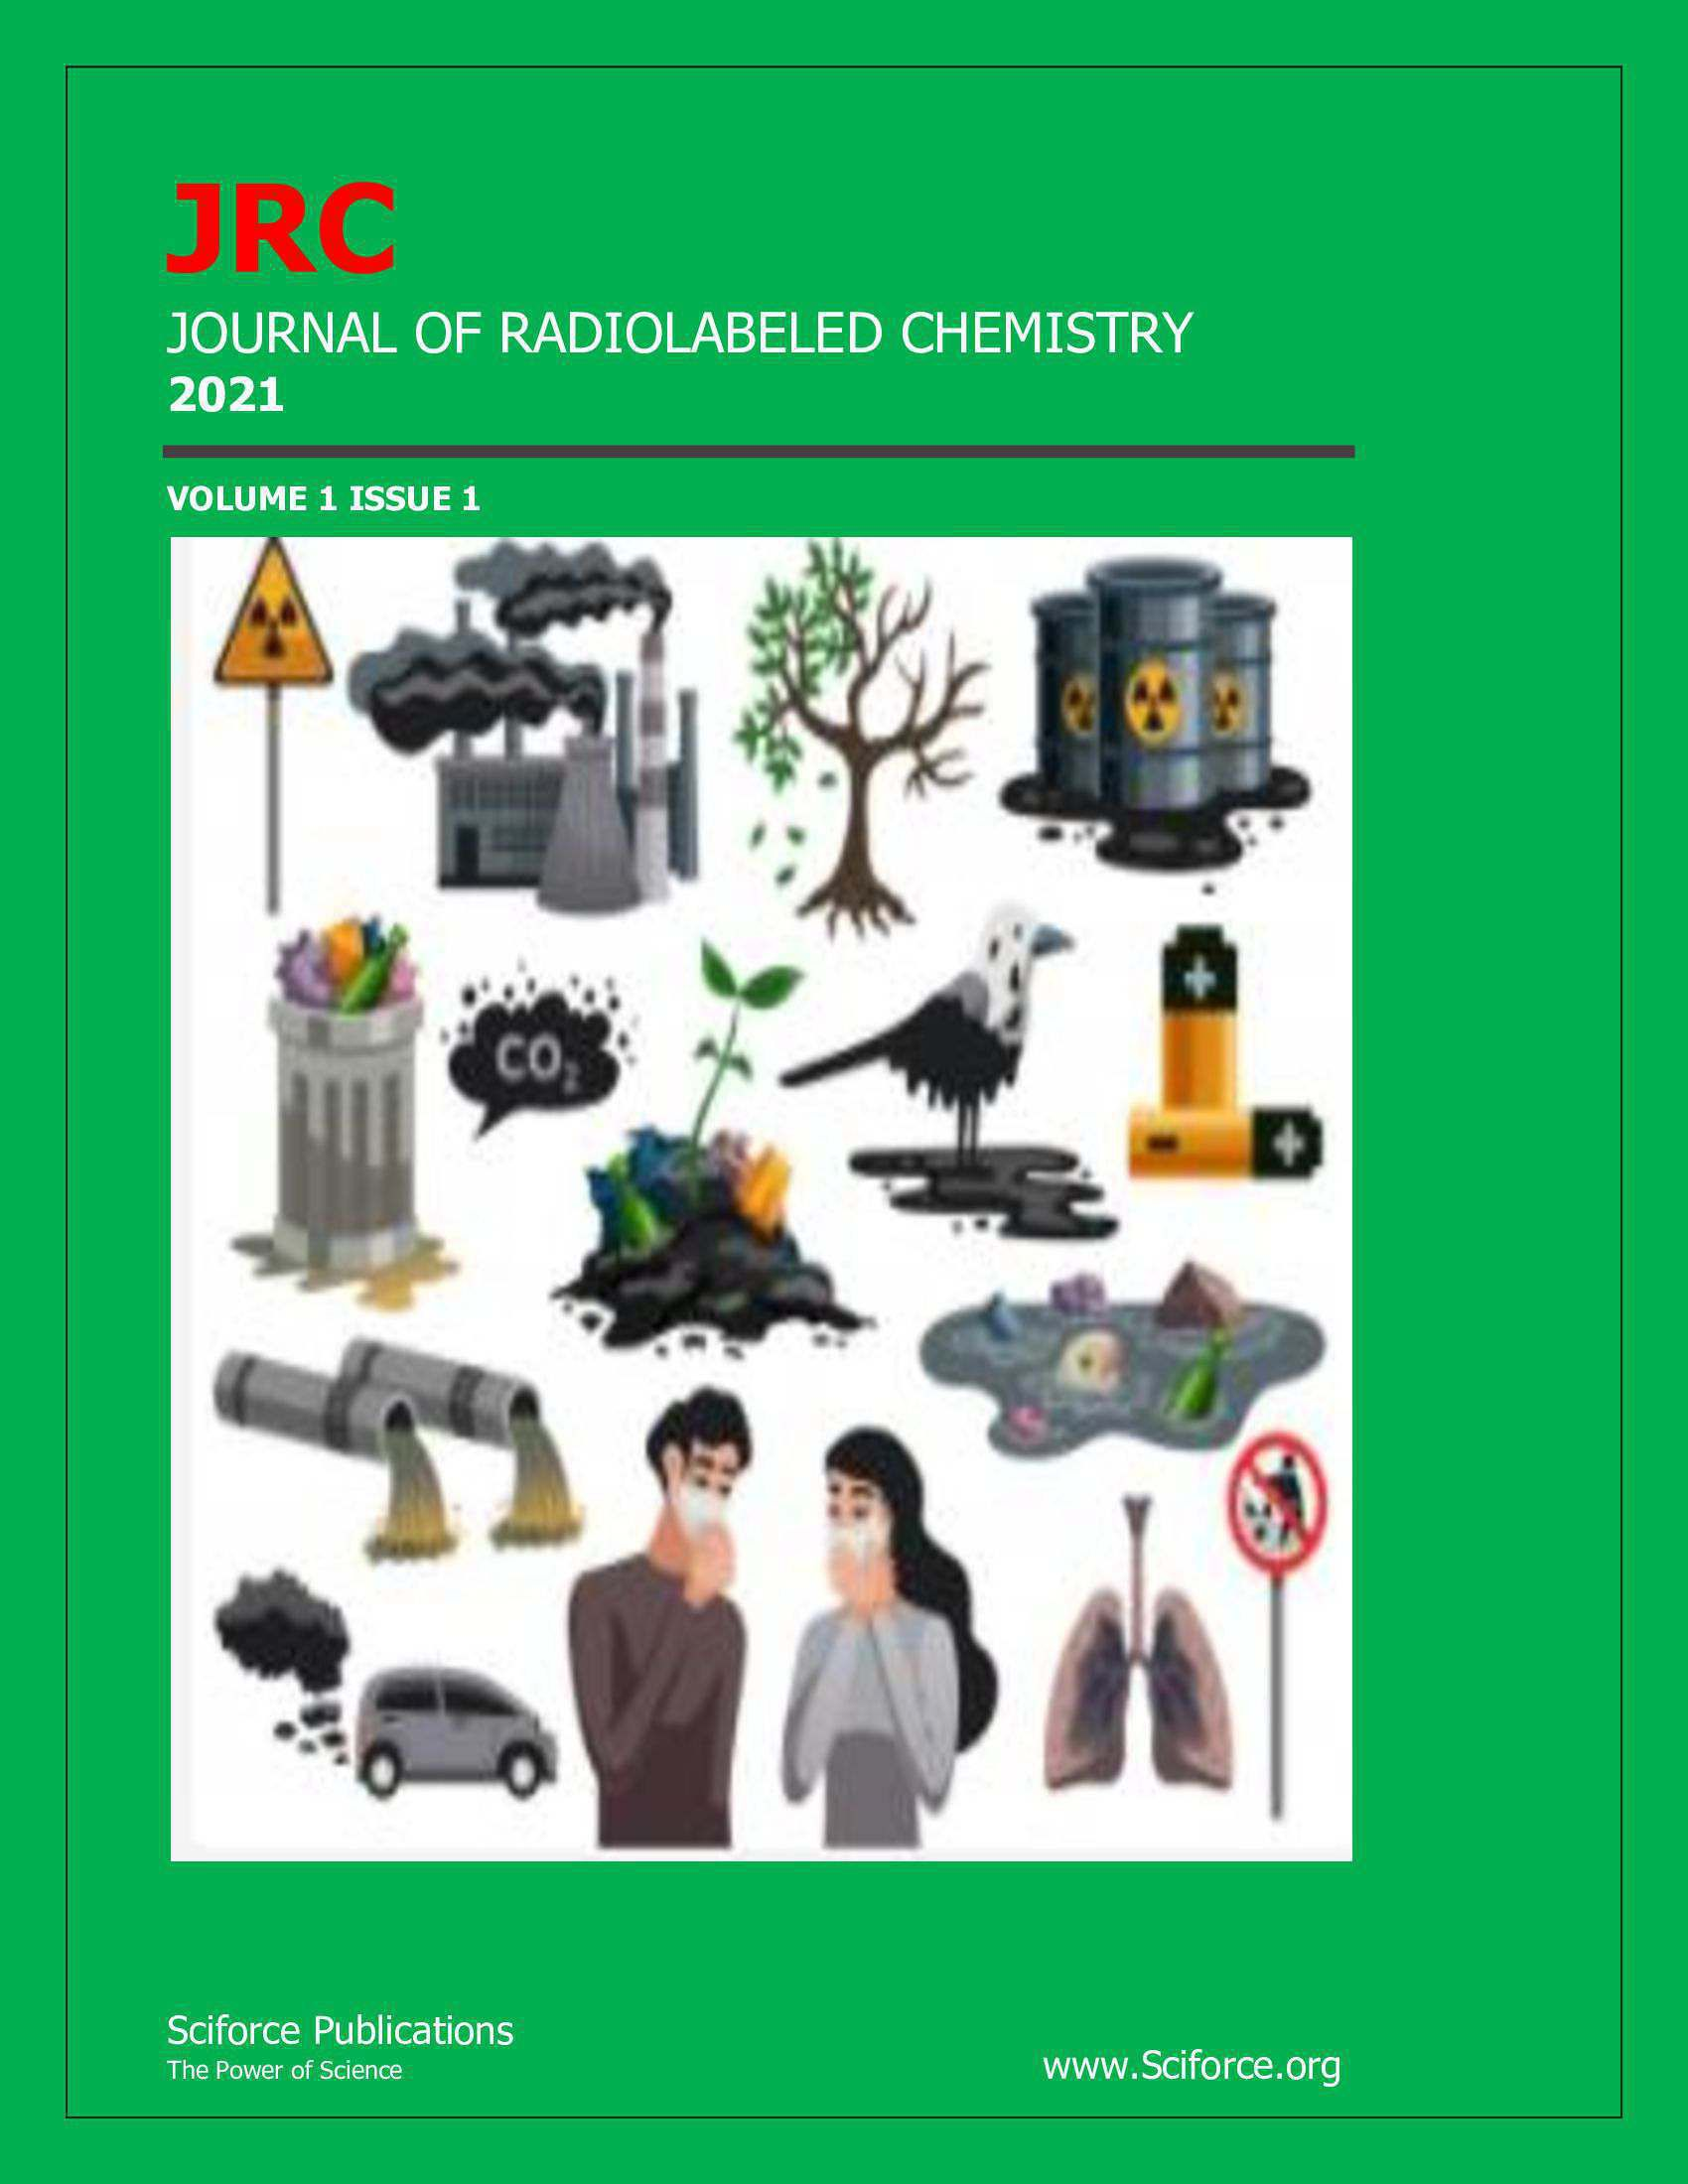 Journal of Radiolabeled Chemistry